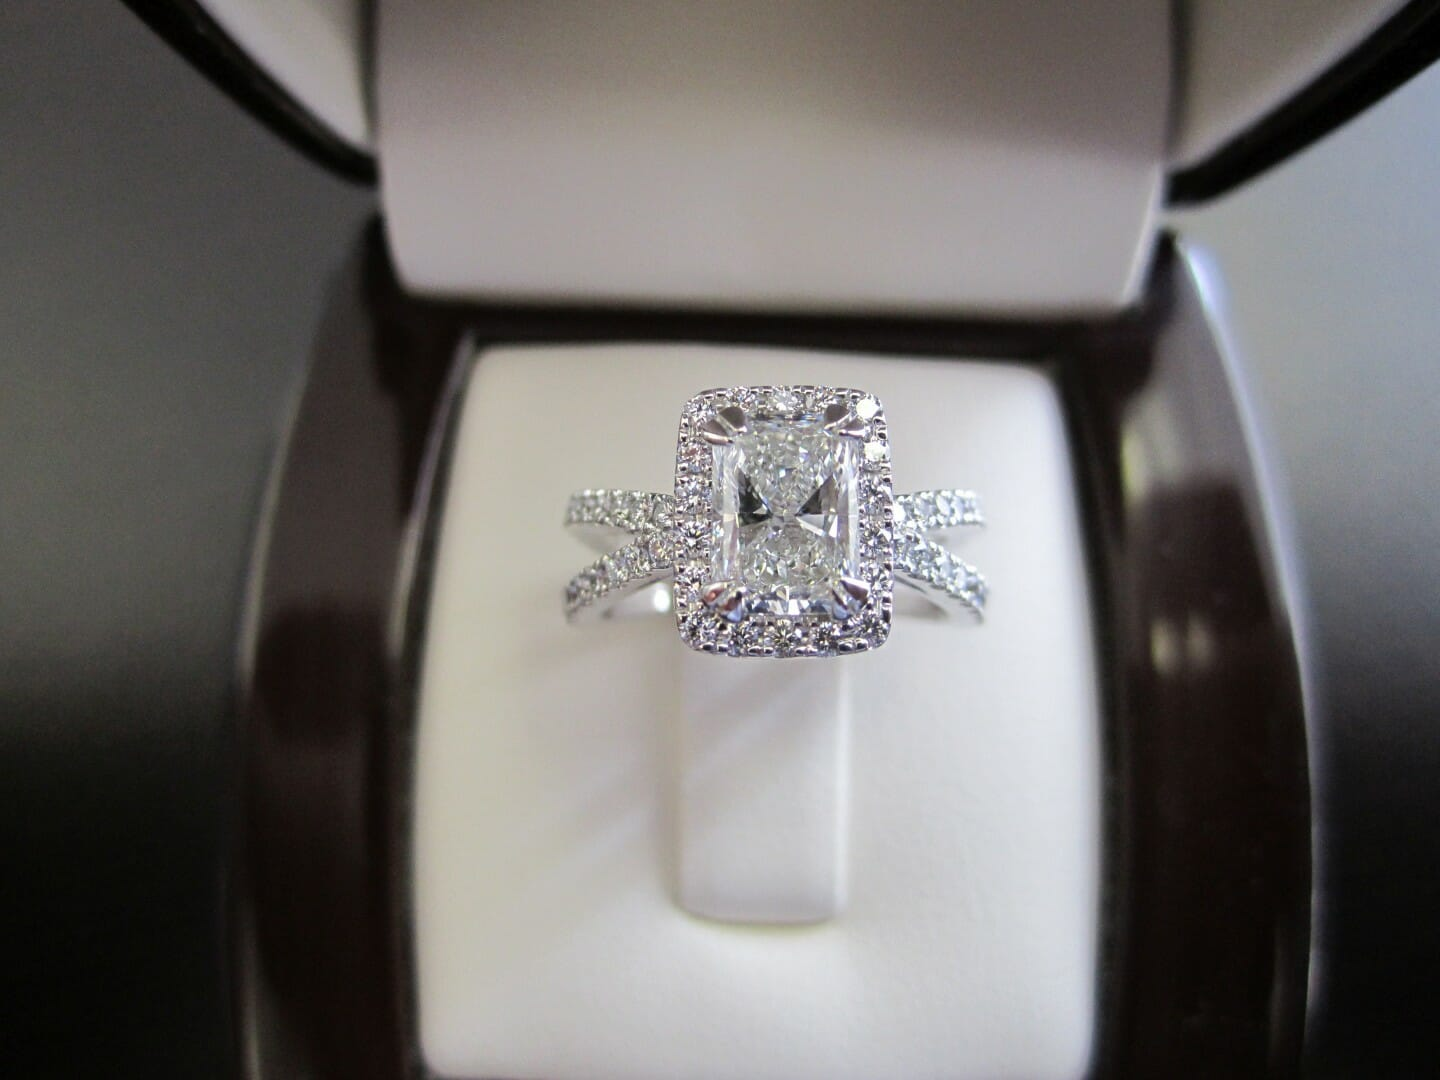 Picture of 1.01ct Radiant Cut Diamond in a Custom Engagement Ring with 0.58ctw of Accent Diamonds